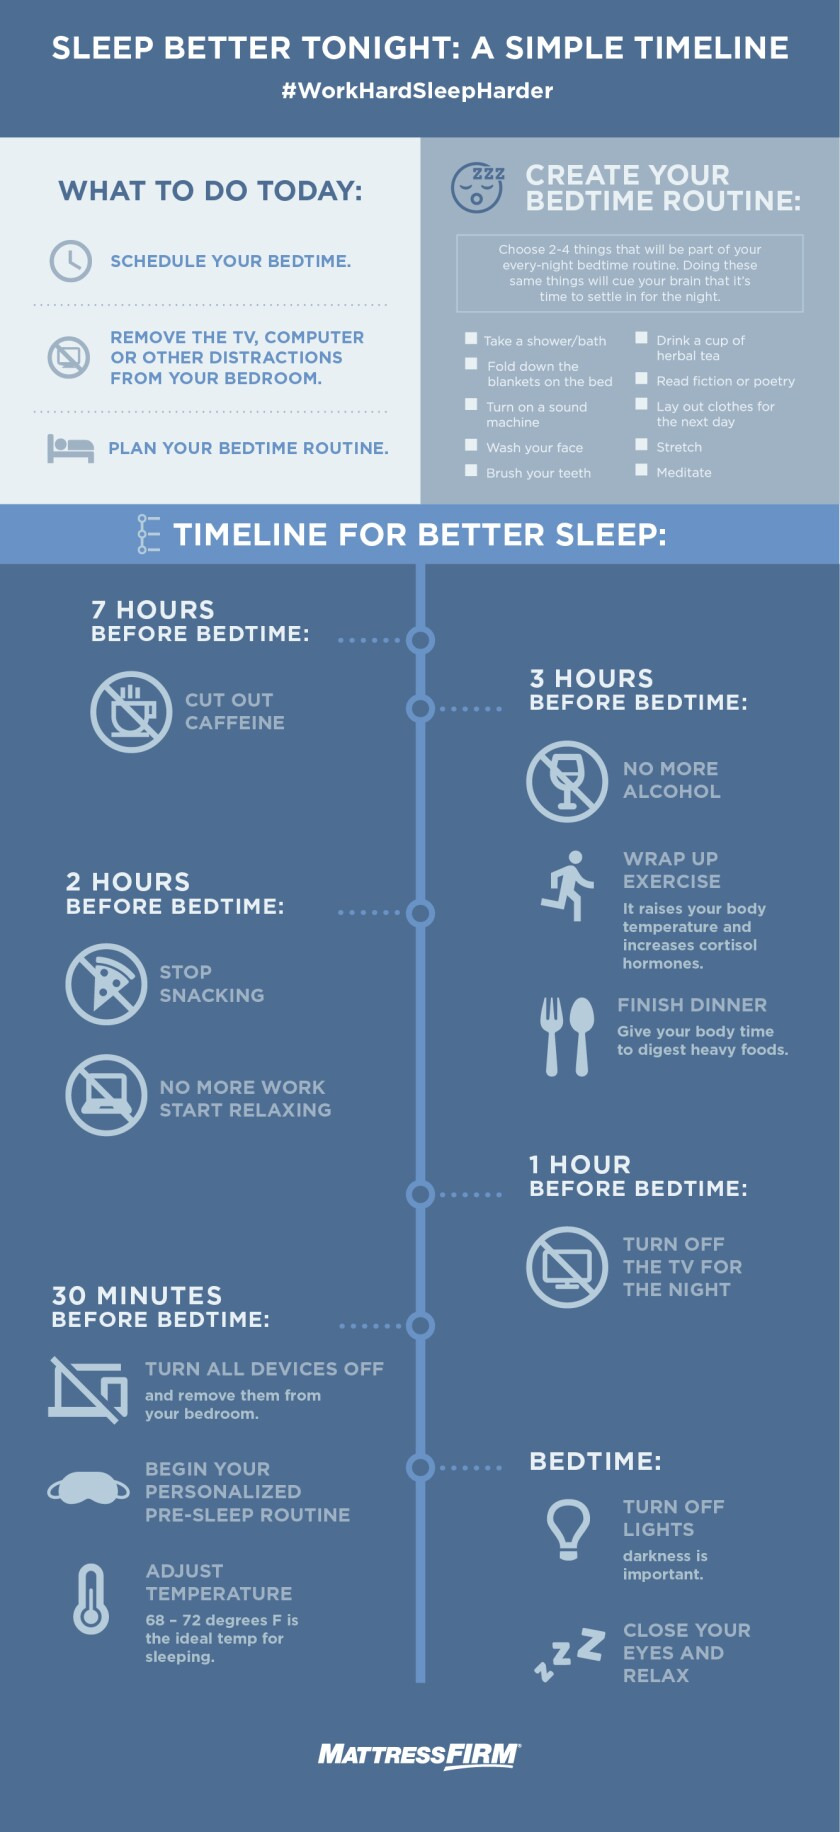 SLEEPBETTER_TONIGHT_TIMELINE_FINAL